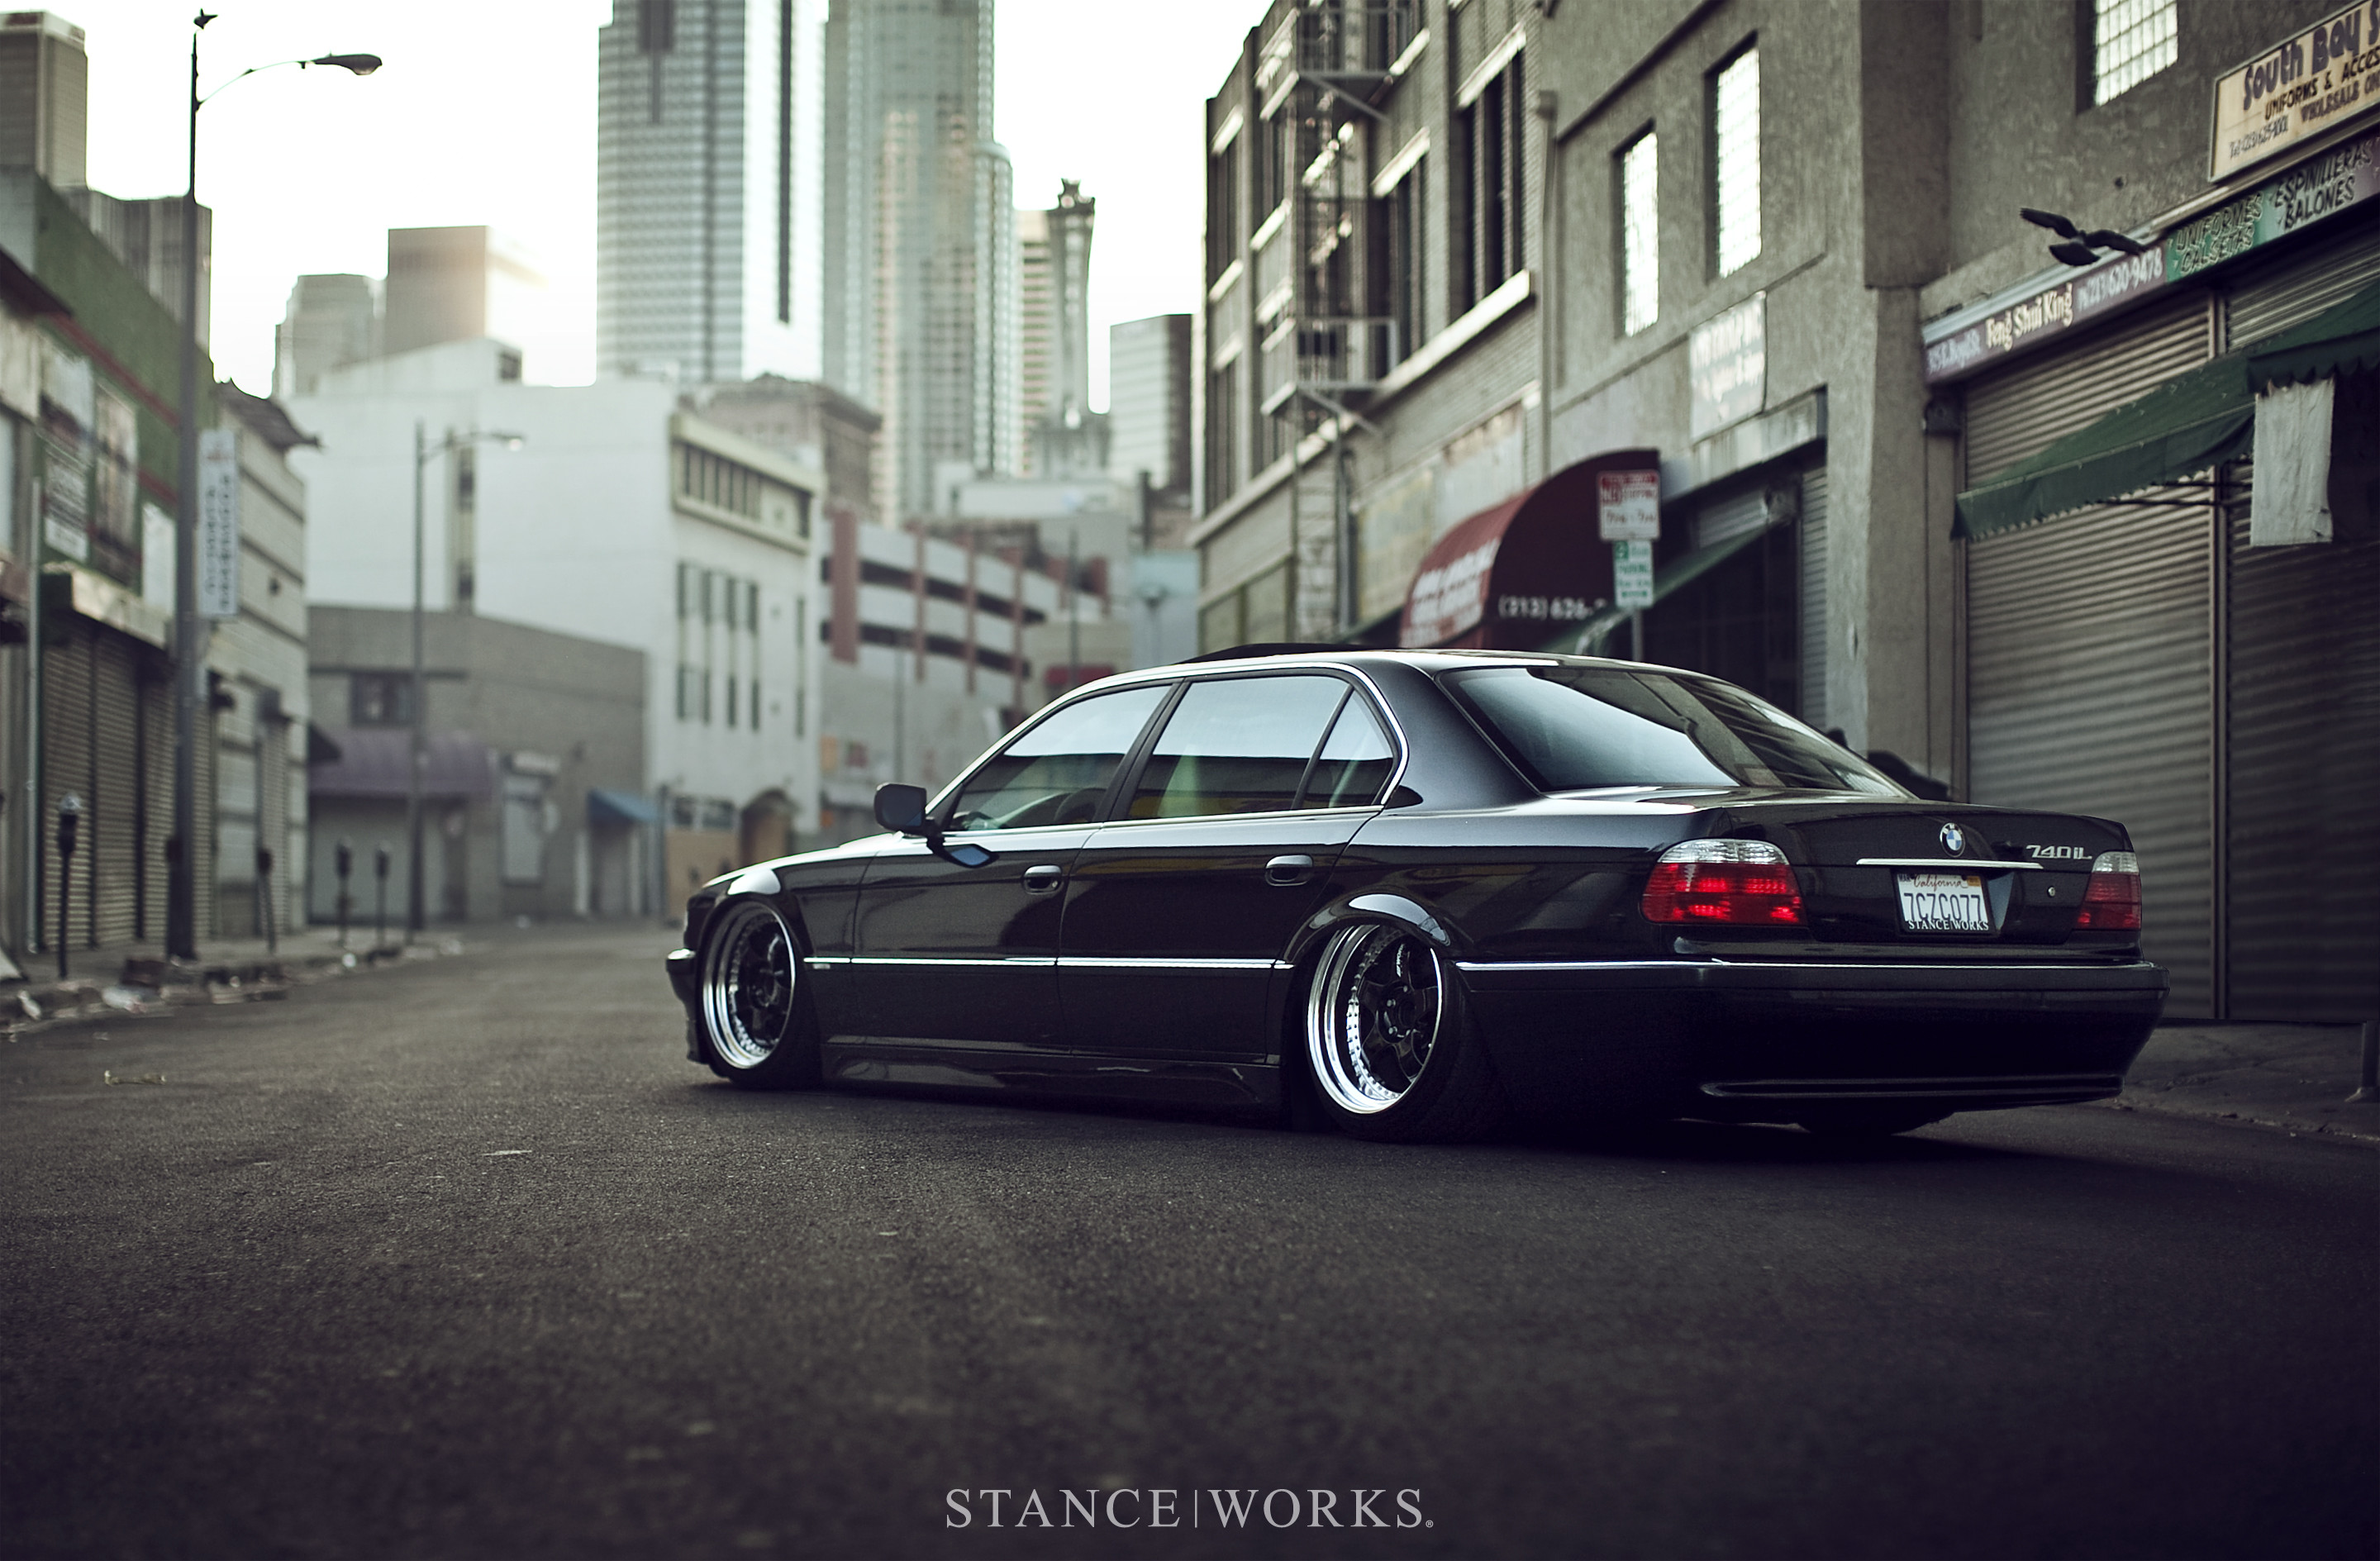 Res: 2880x1889, STANCEWORKS Wallpaper – Laid Out in LA